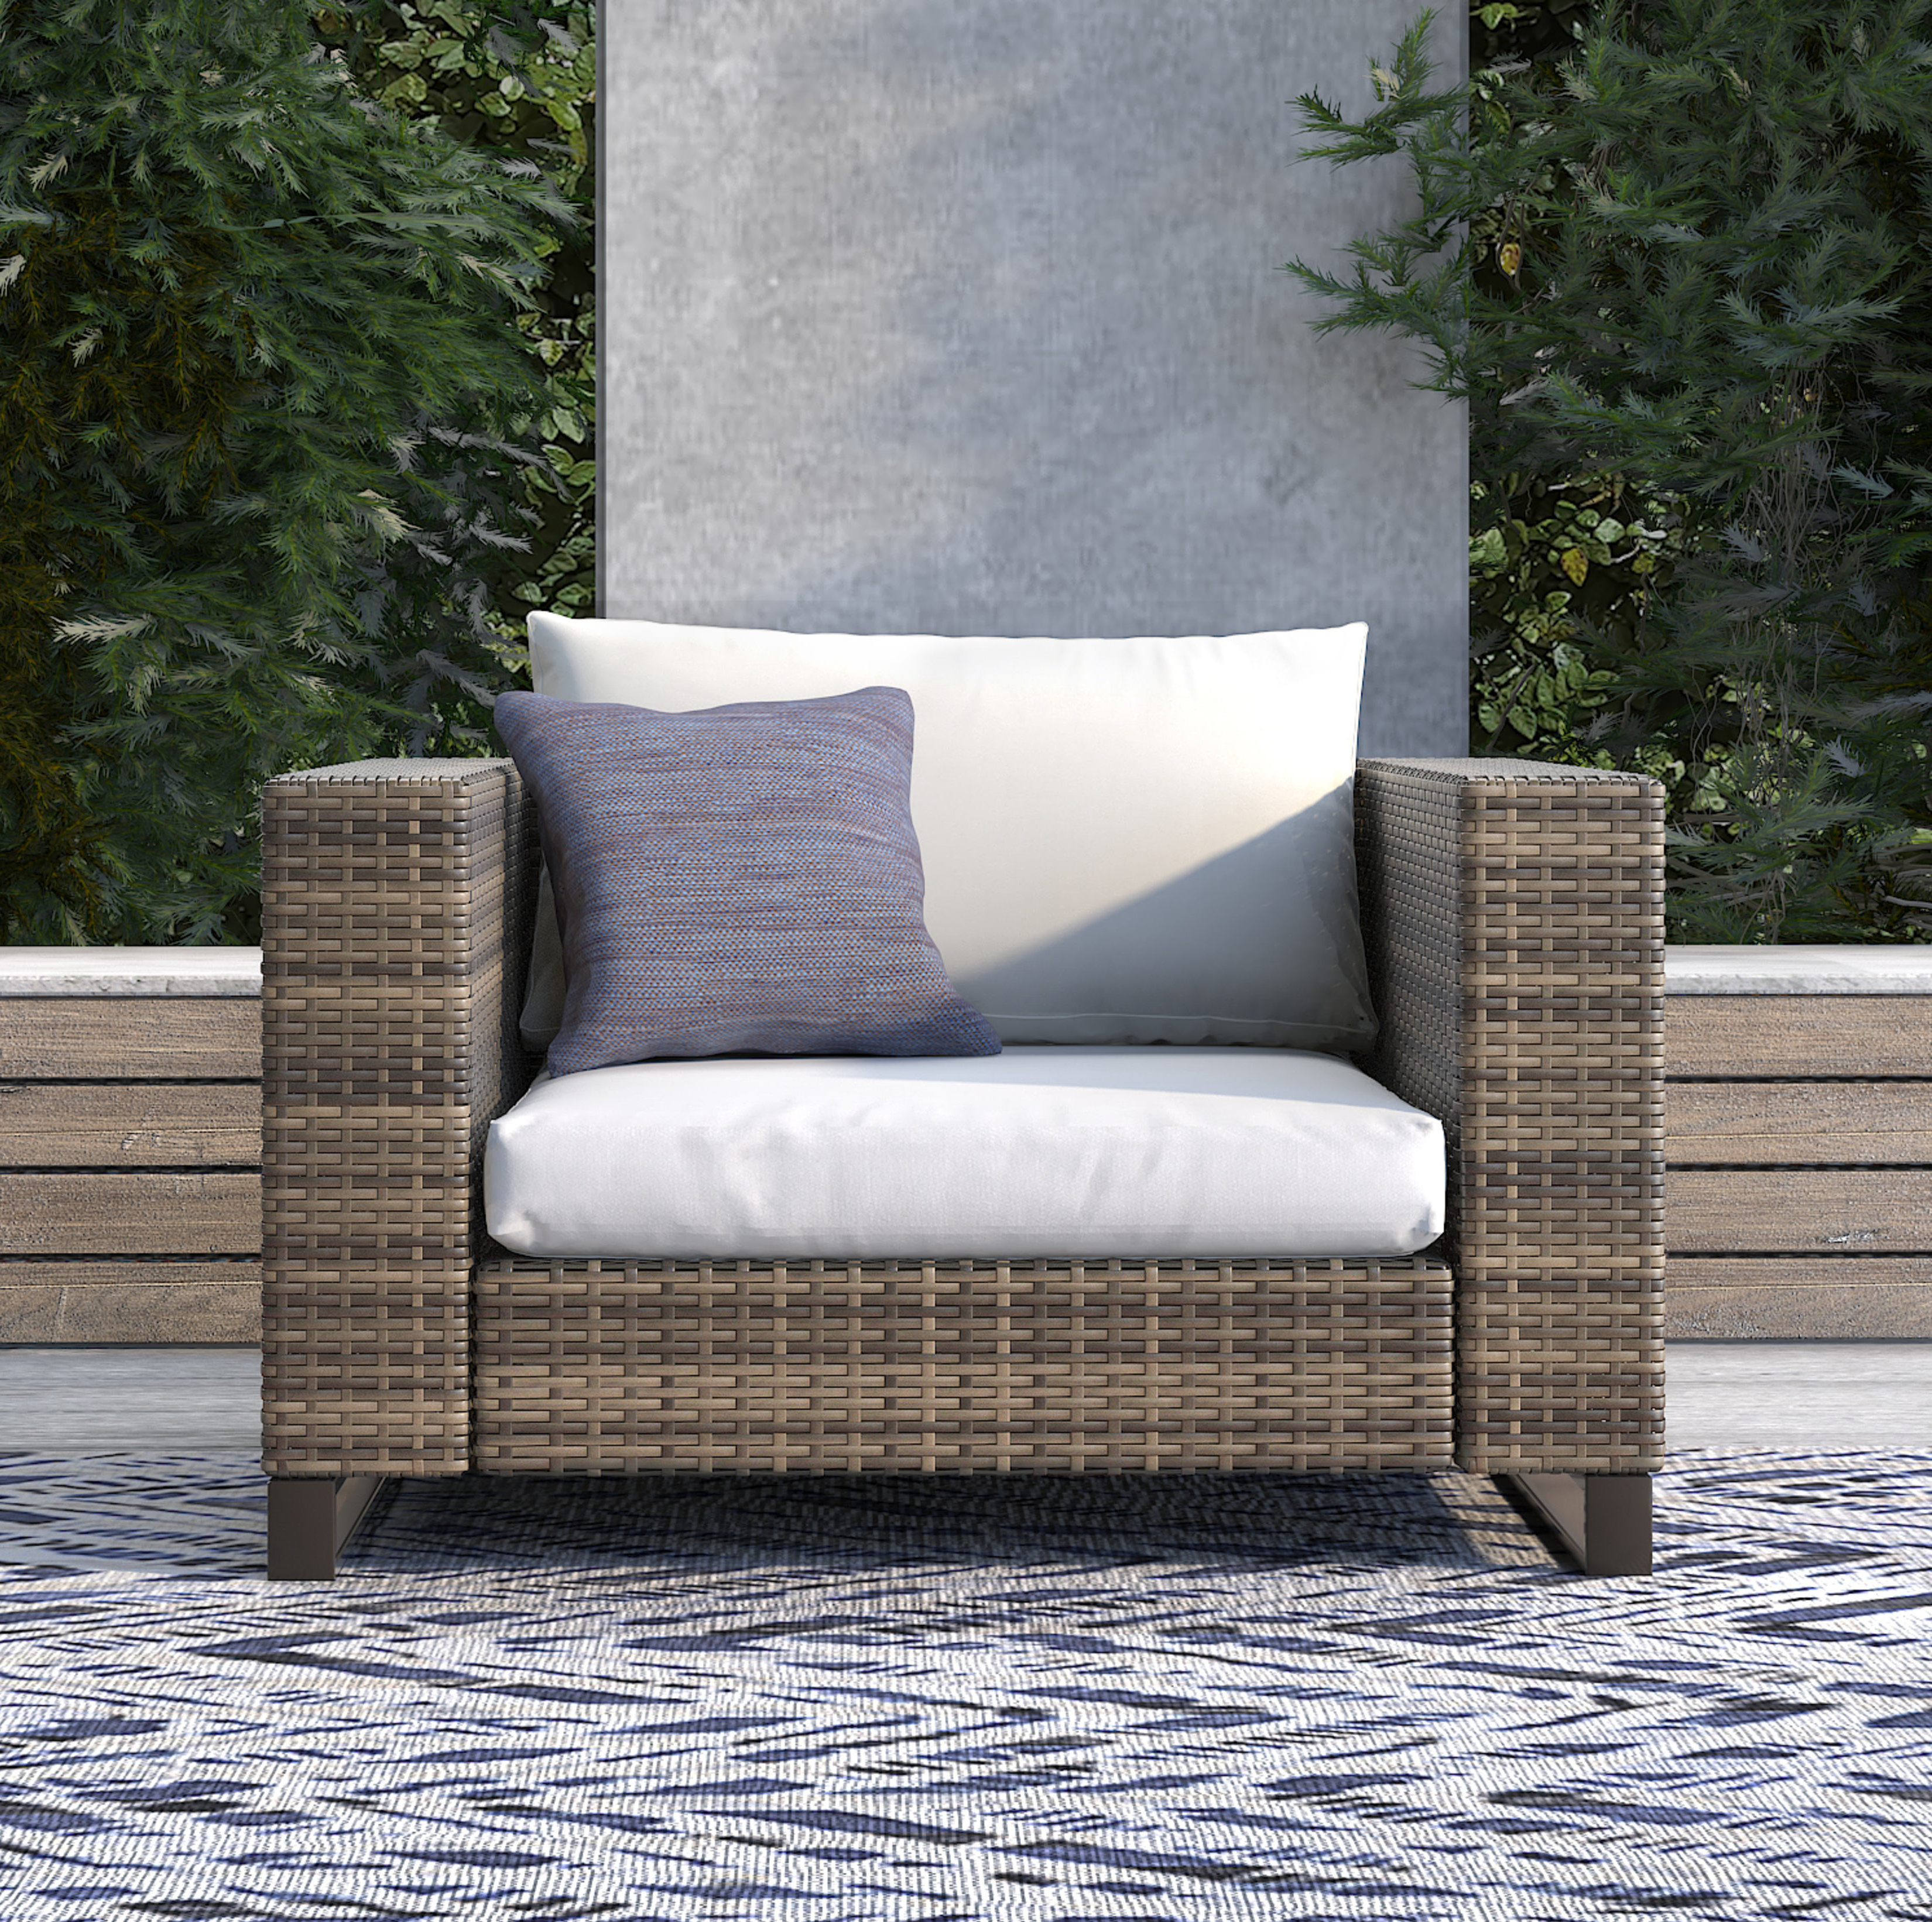 Keever Patio Sofas With Sunbrella Cushions Throughout Preferred Oceanside Outdoor Wicker Patio Chair With Cushions (View 11 of 20)